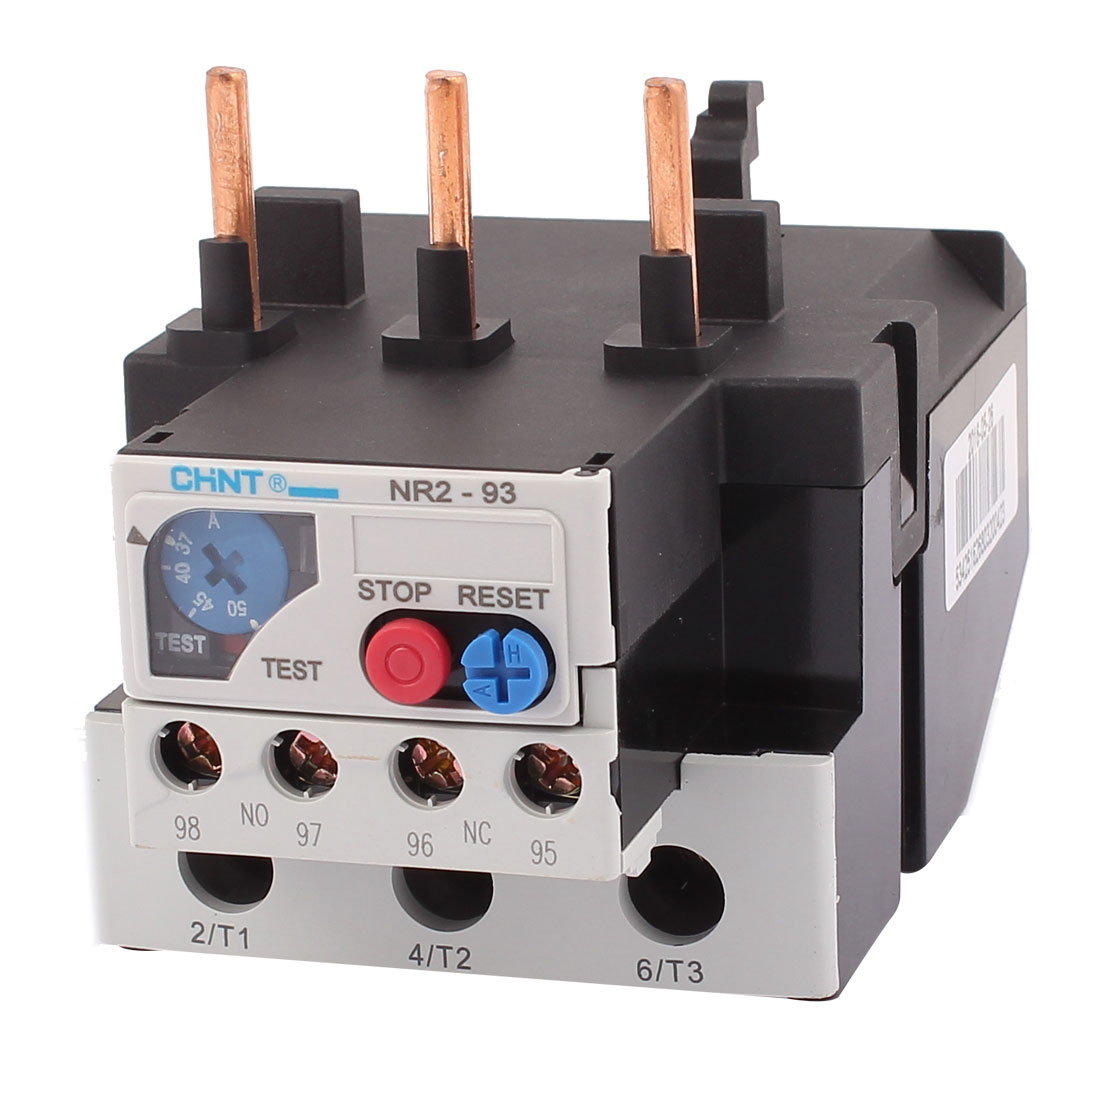 NR2-93 37-50A 3 Pole 1 NO 1 NC Motor Protector Electric Thermal Overload Relay